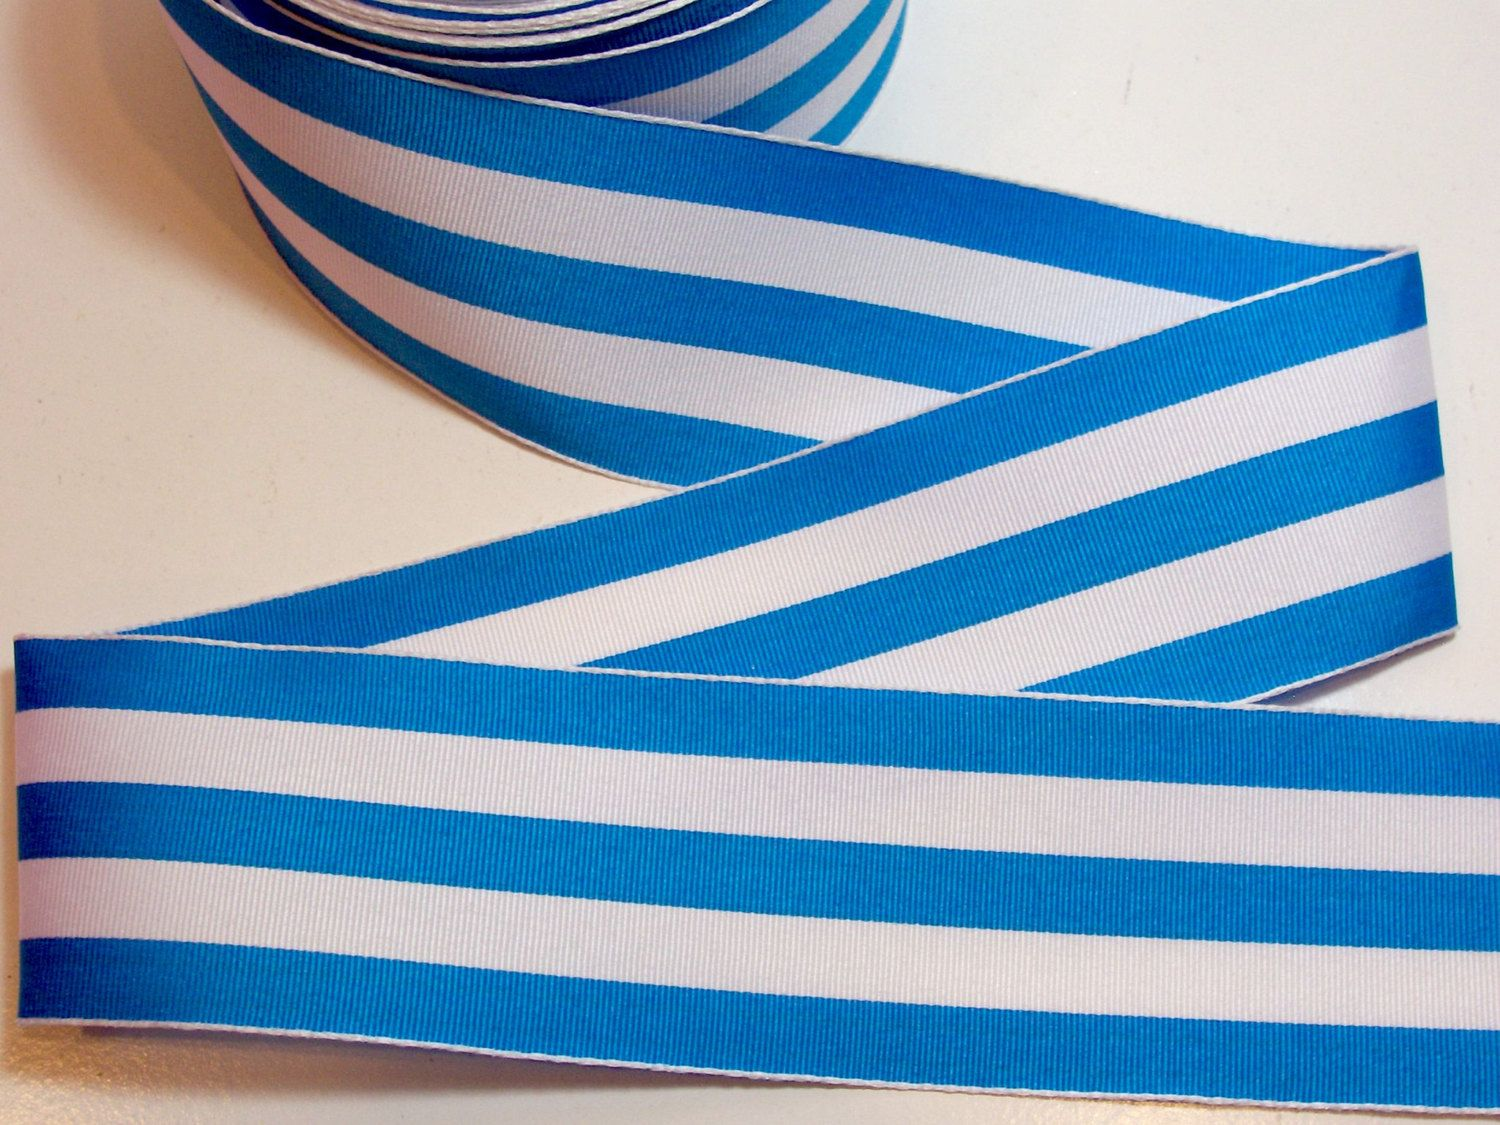 Wired Ribbon, Medium Blue and White Stripe Grosgrain Wired Fabric ...